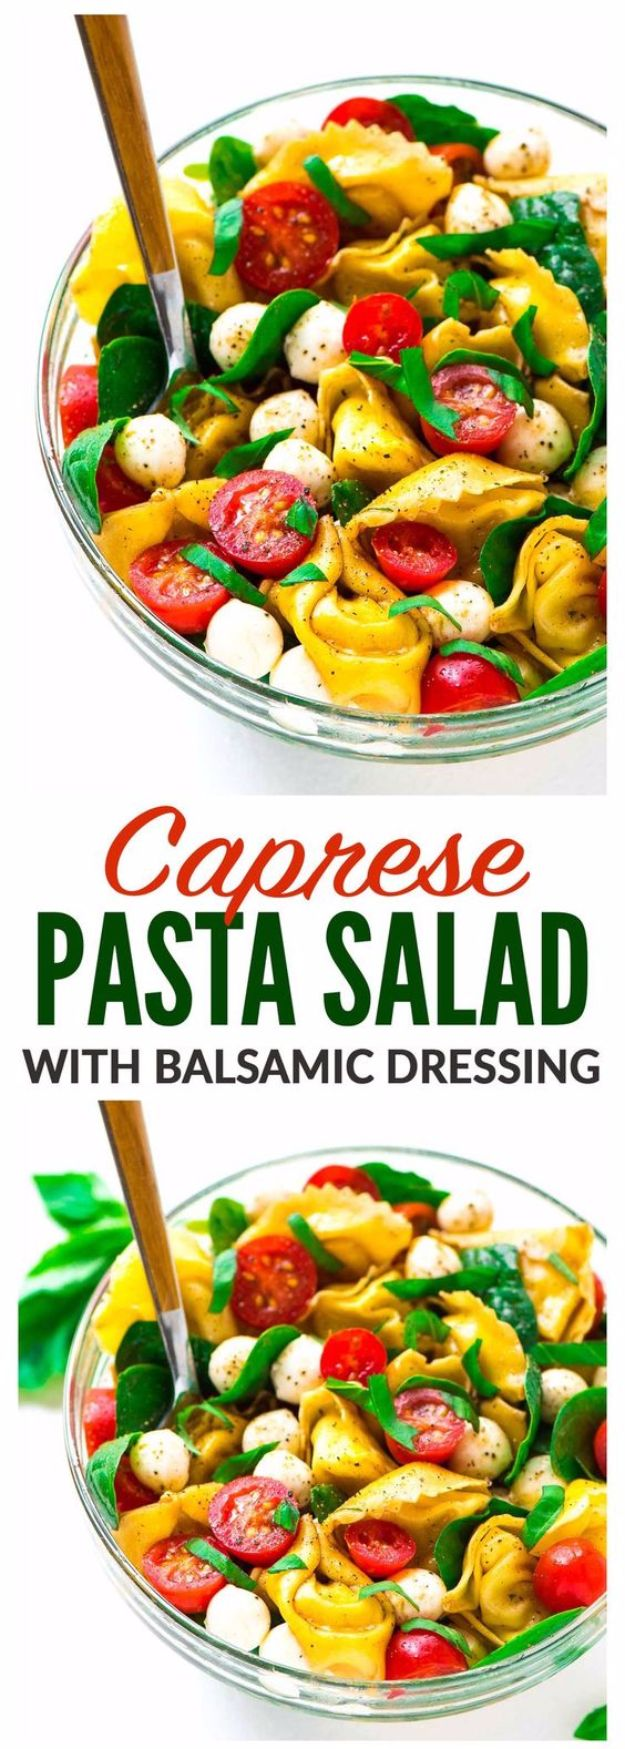 Best Recipe Ideas for Summer - Caprese Pasta Salad - Cool Salads, Easy Side Dishes, Recipes for Summer Foods and Dinner to Beat the Heat - Light and Healthy Ideas for Hot Summer Nights, Pool Parties and Picnics http://diyjoy.com/best-recipes-summer